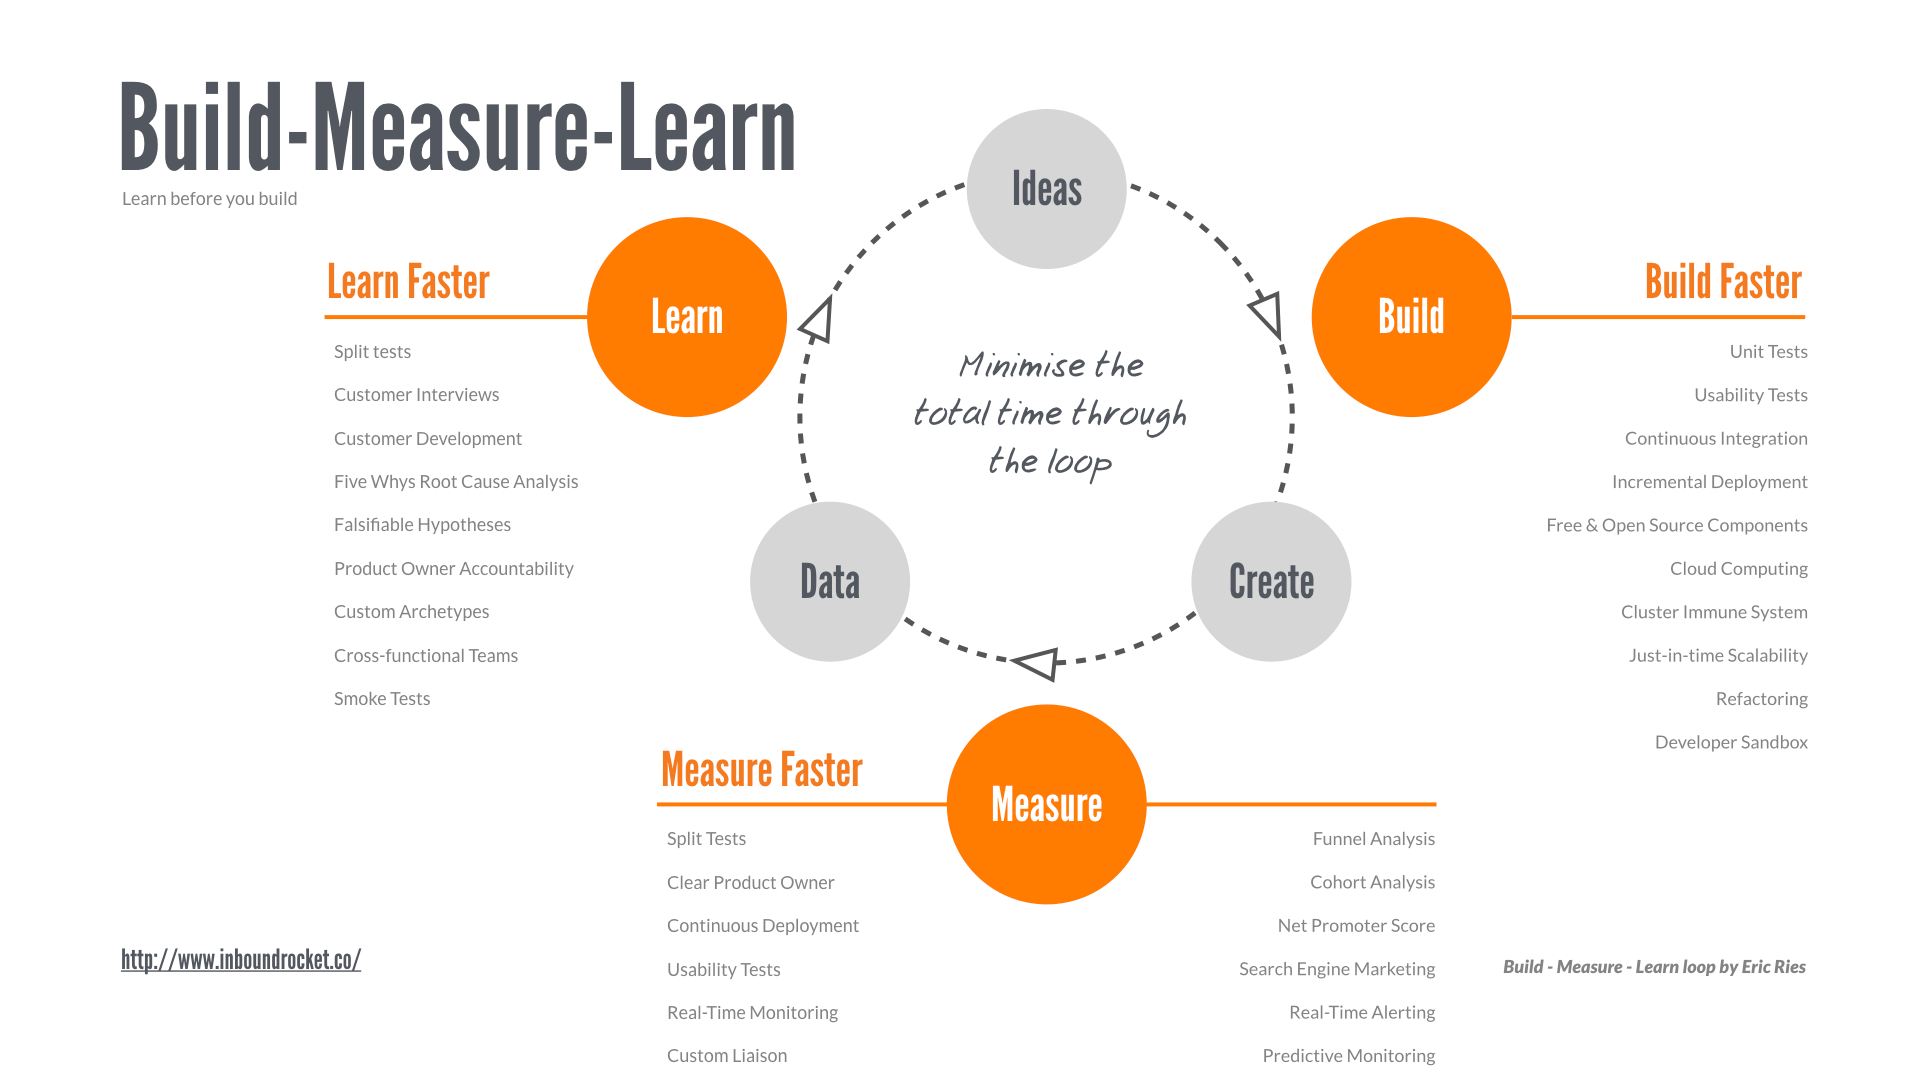 The Build - Measure - Learn loop as thought of by Eric Ries